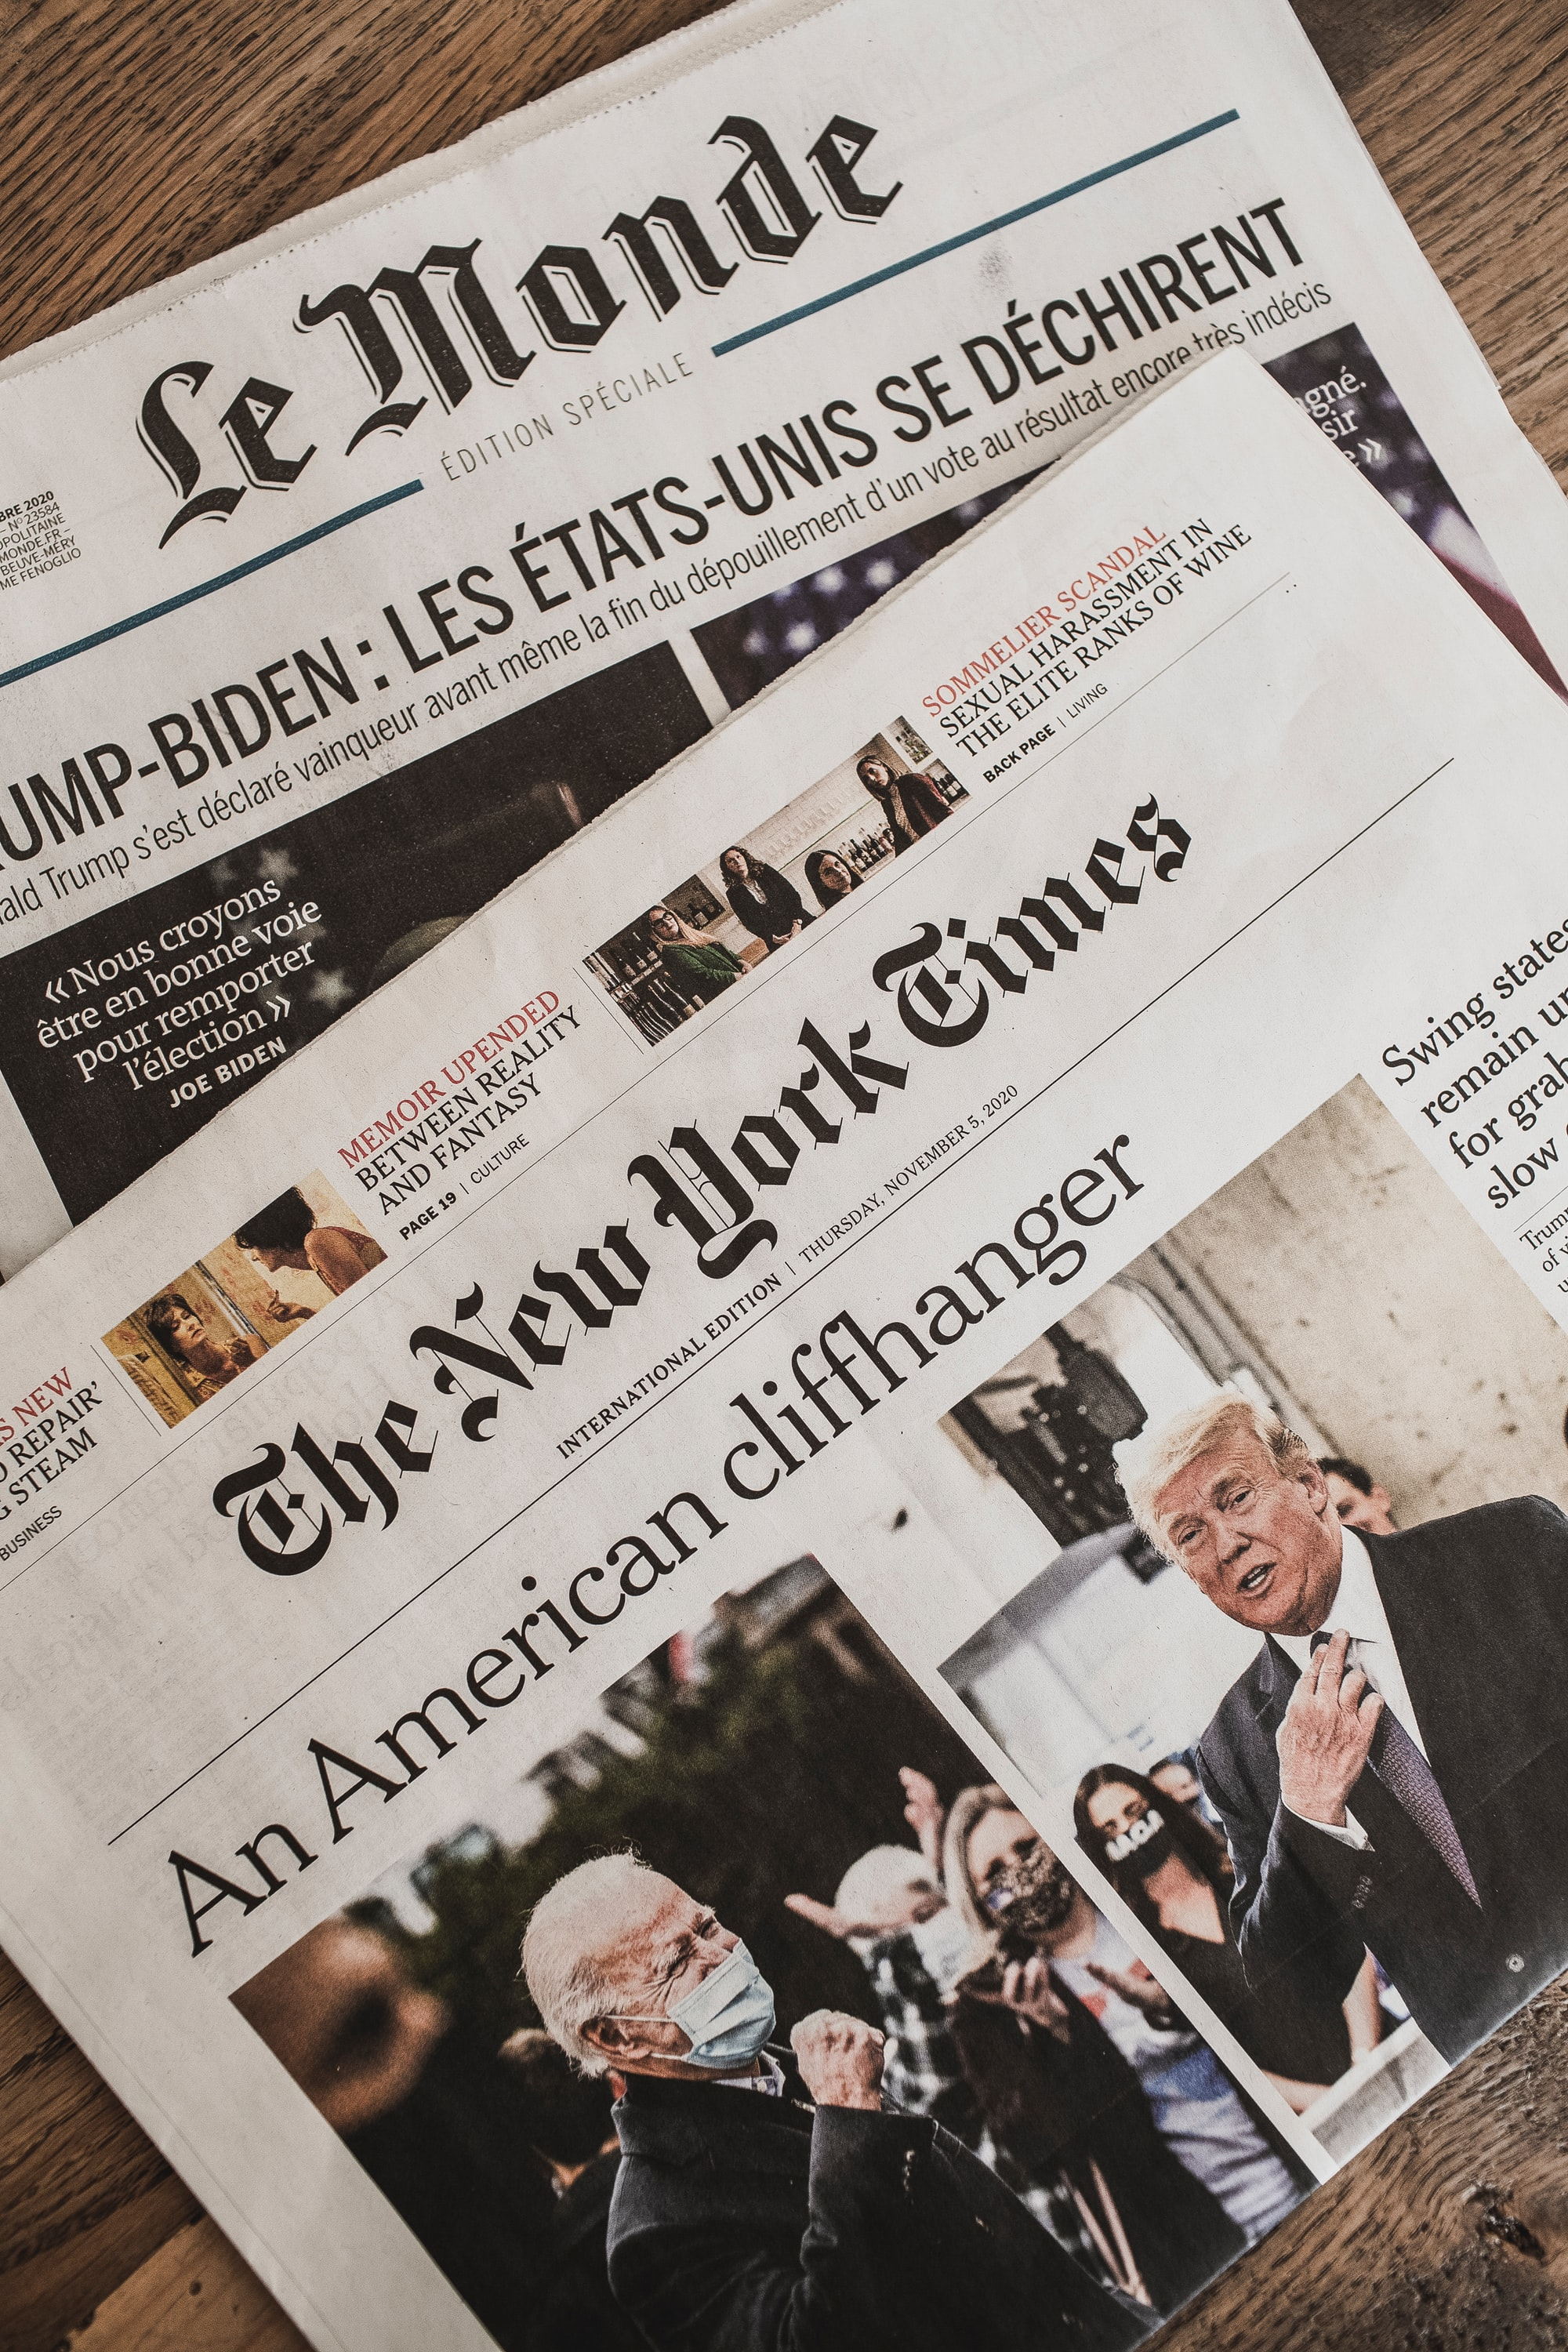 International daily newspaper from Thursday 5th November 2020 – Le Monde (France) & The New York Times (USA) – After the election report.